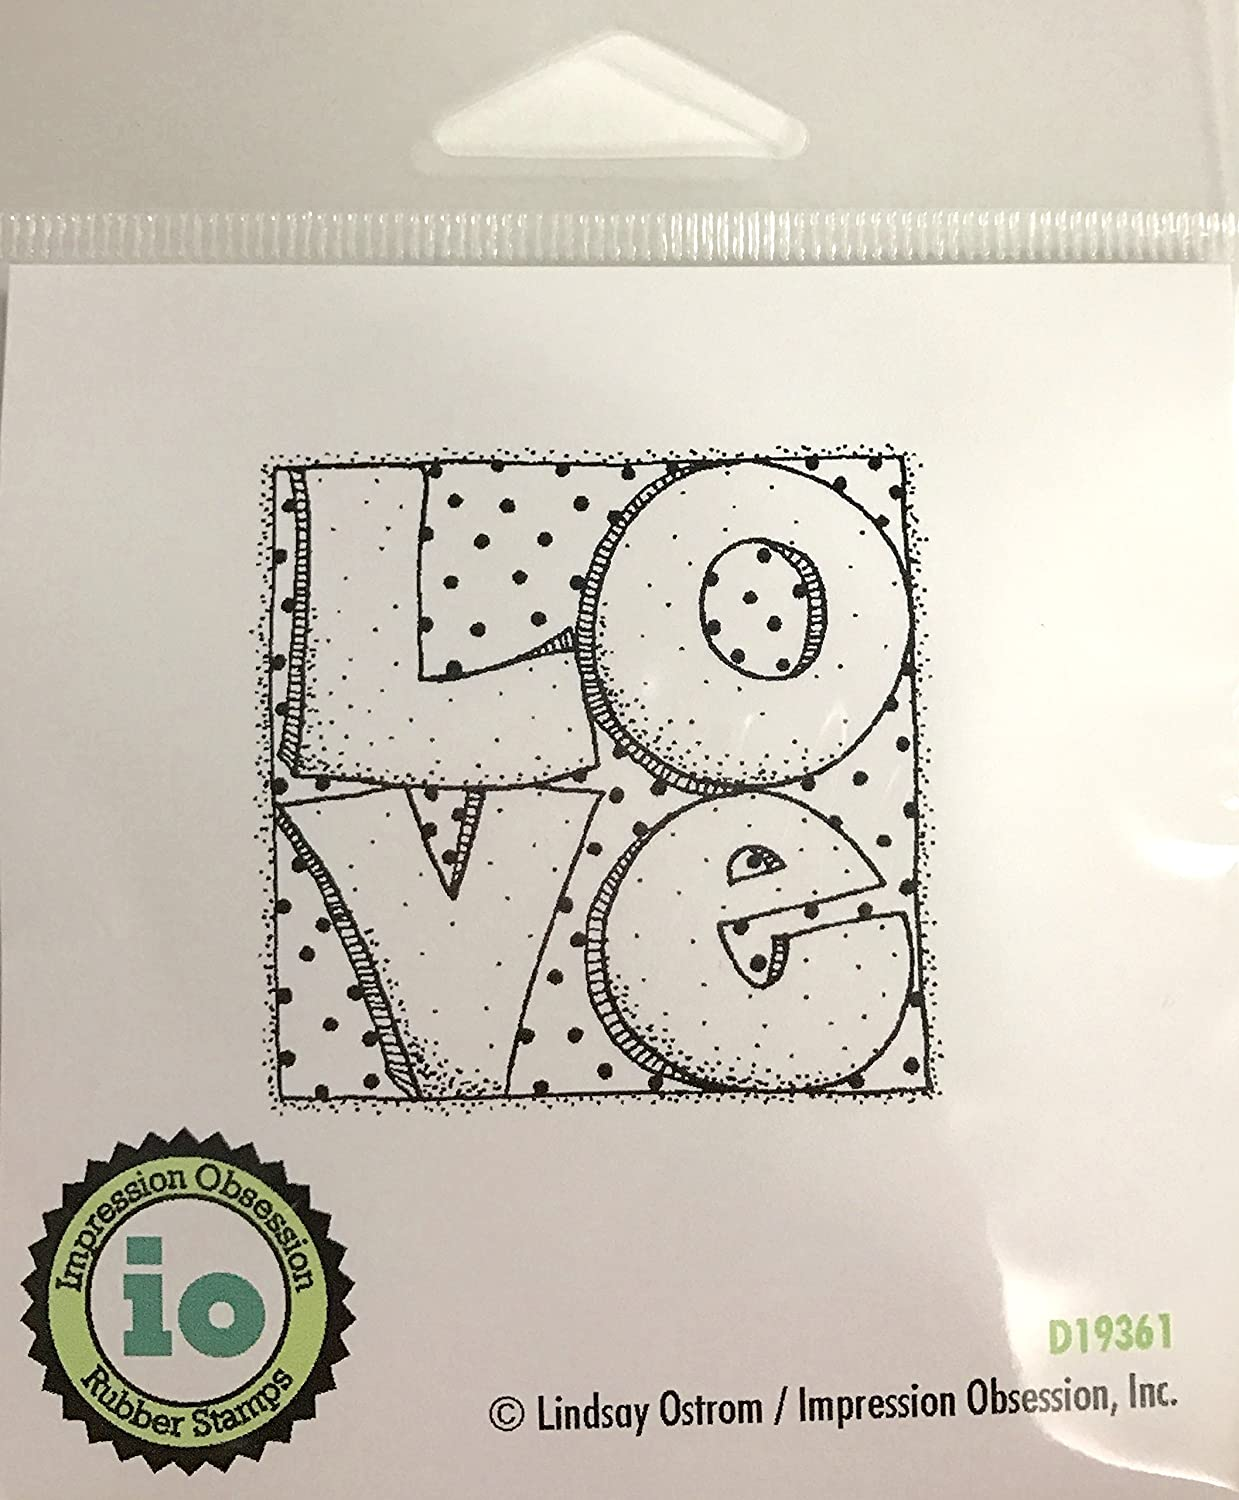 Impression Obsession IO Love Squared Cling Mounted Rubber Stamp D19361